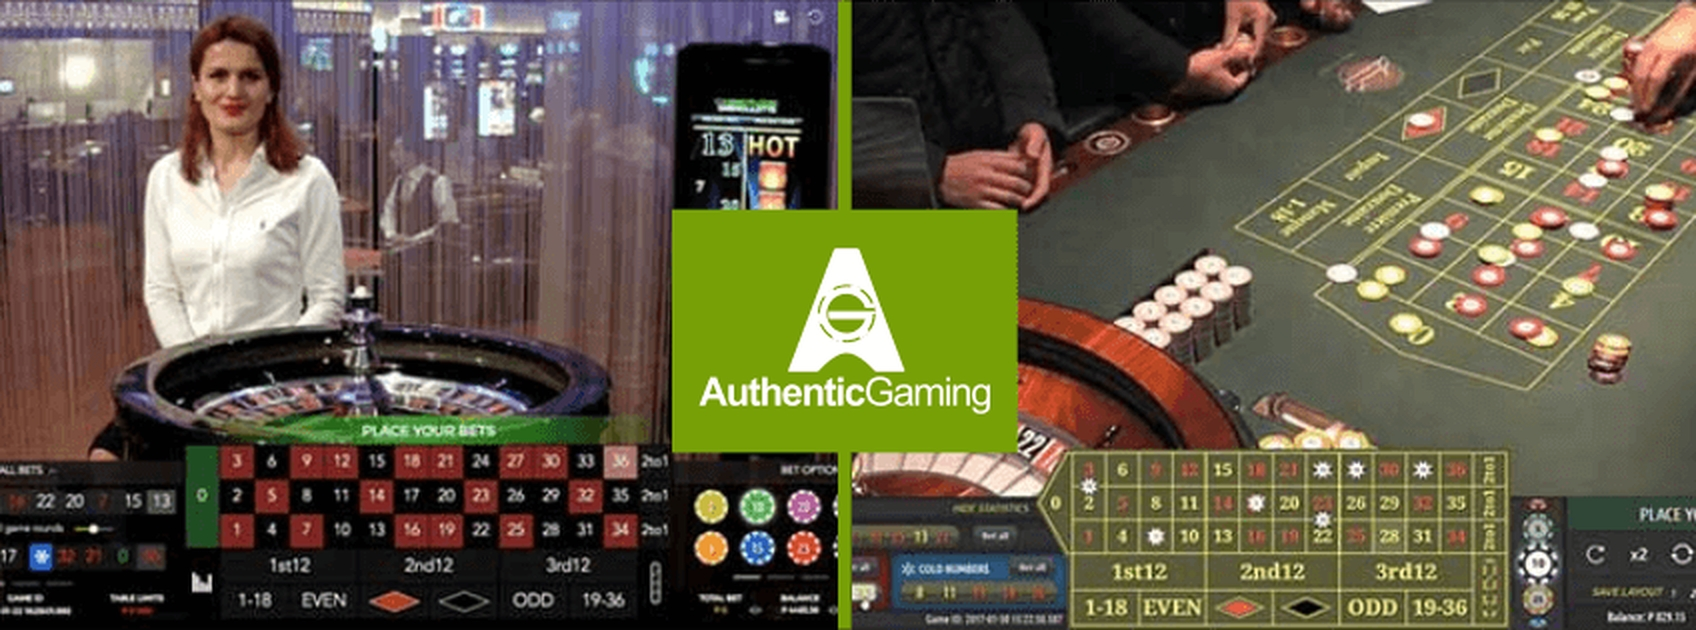 Live Roulette DUO Saint Vincent Online Slot Demo Game by Authentic Gaming